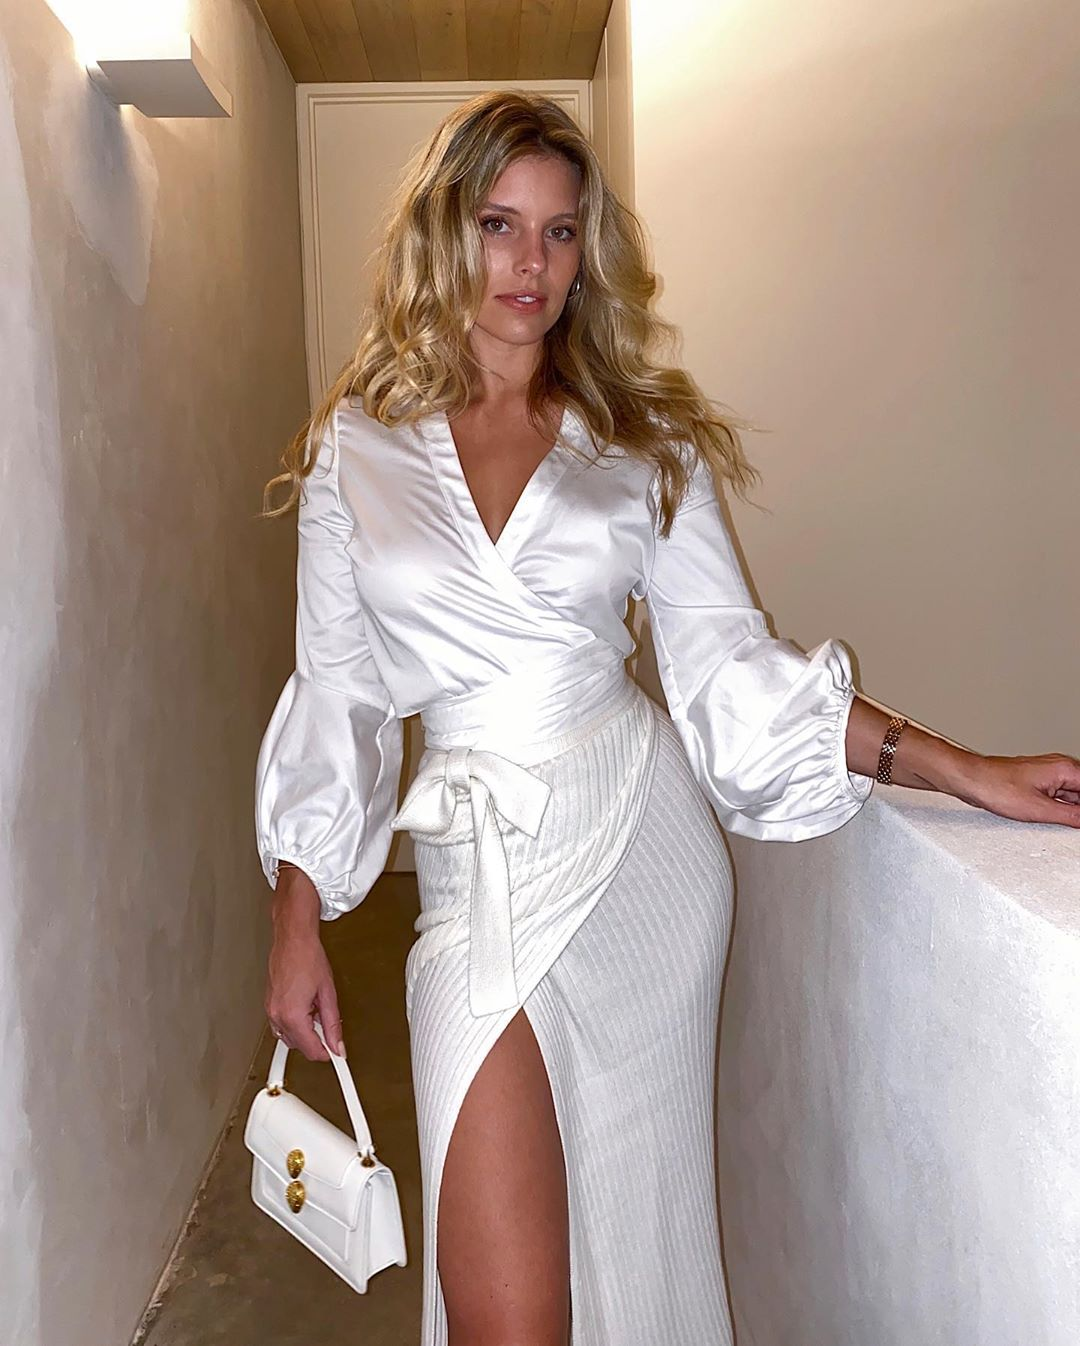 Natasha Oakley rocking a Shiny white satin wrap top with a satin material, puffy sleeves and a V-neck